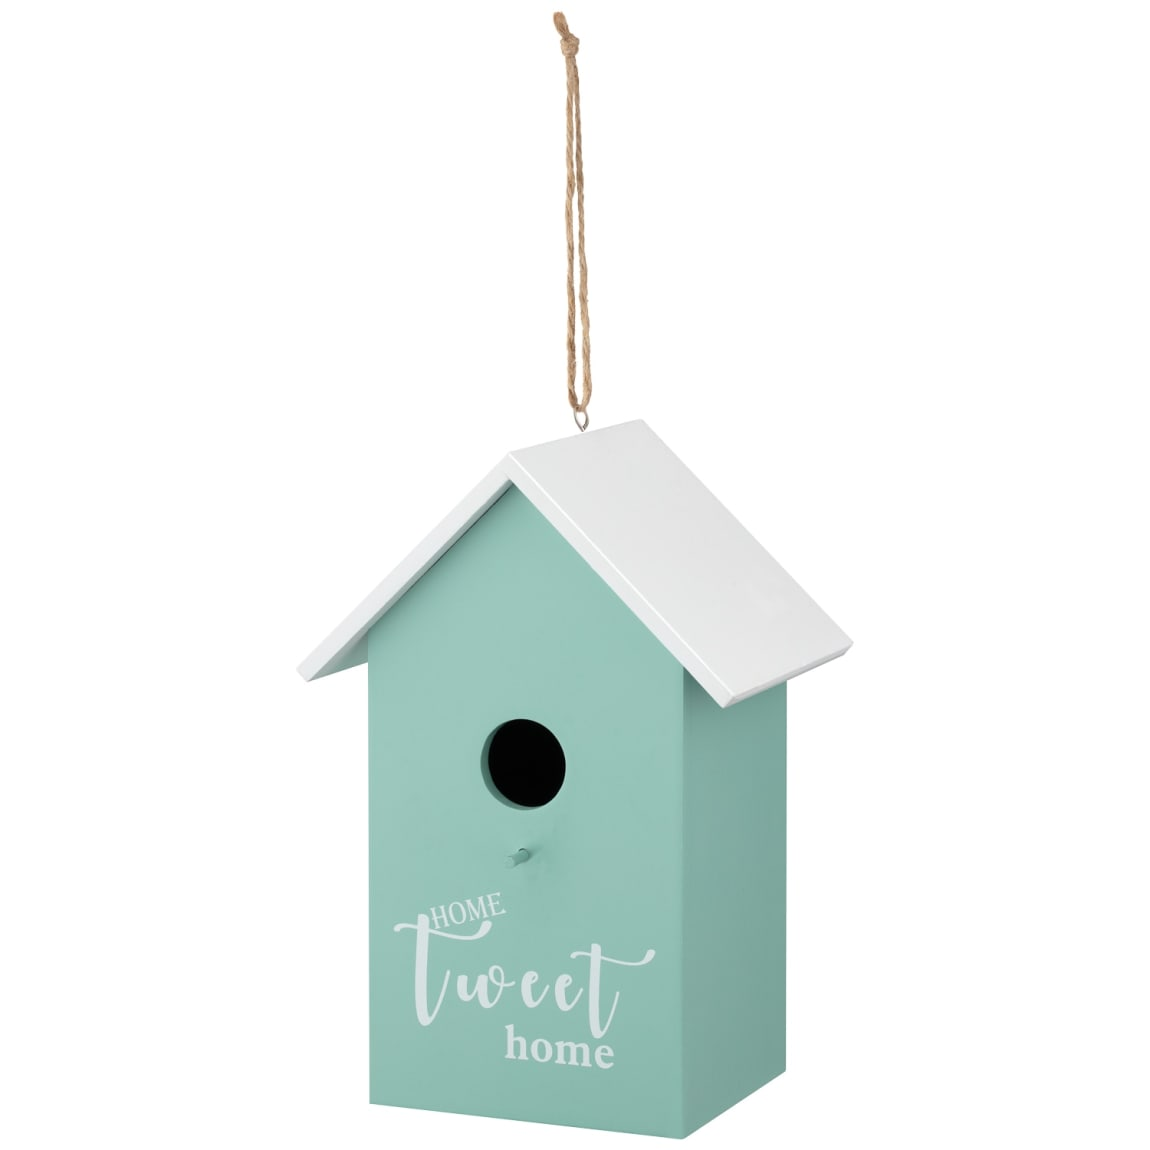 Glennwood Bird House - Home Tweet Home